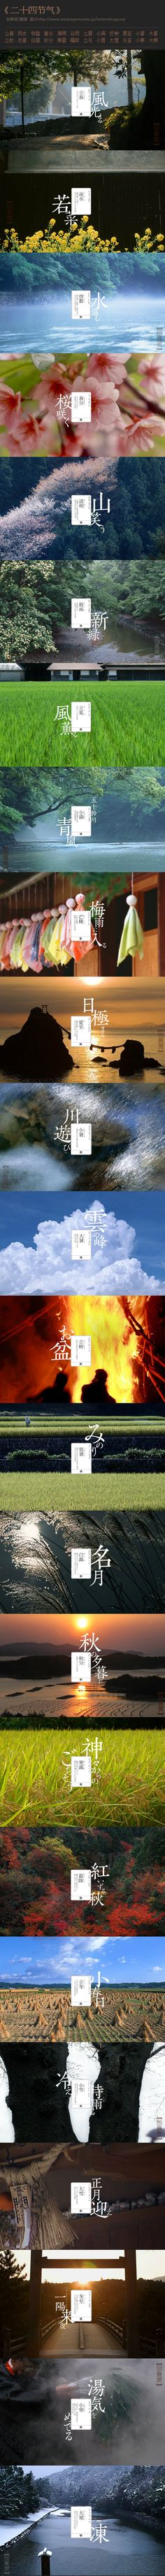 《二十四节气》的介绍- Beautiful graphic introducing nature and the weather associated with different seasons in the East.